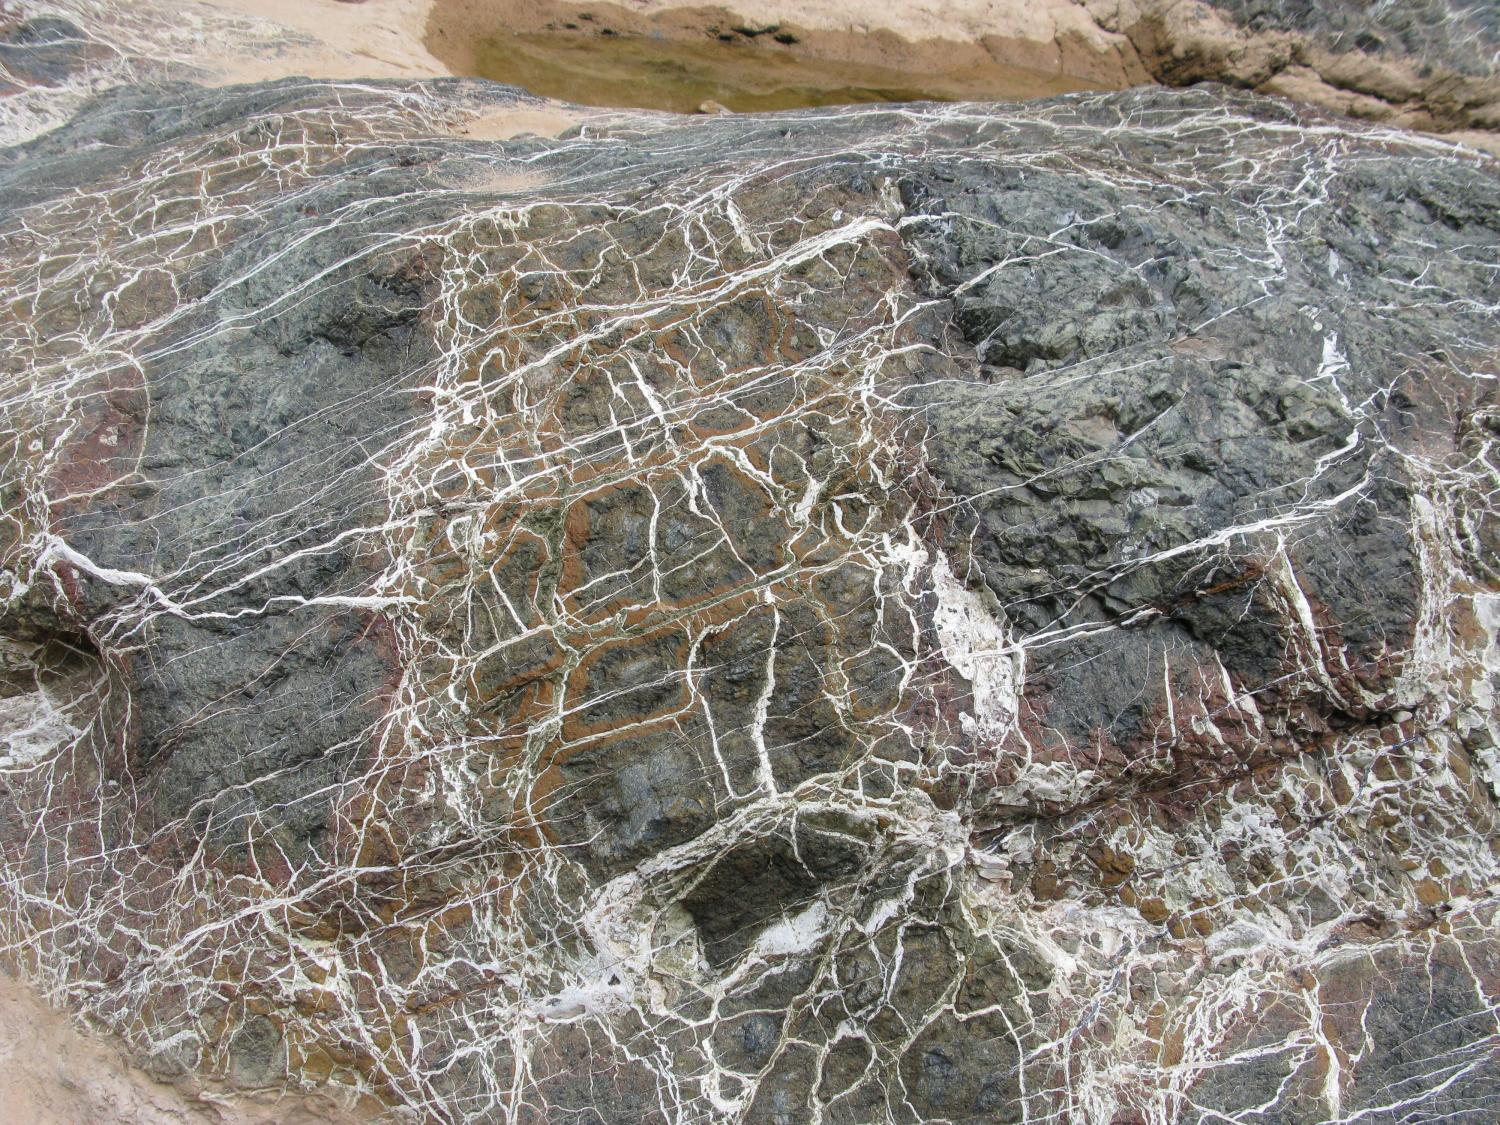 Rock from Tiwi, Samail Ophiolite, Oman